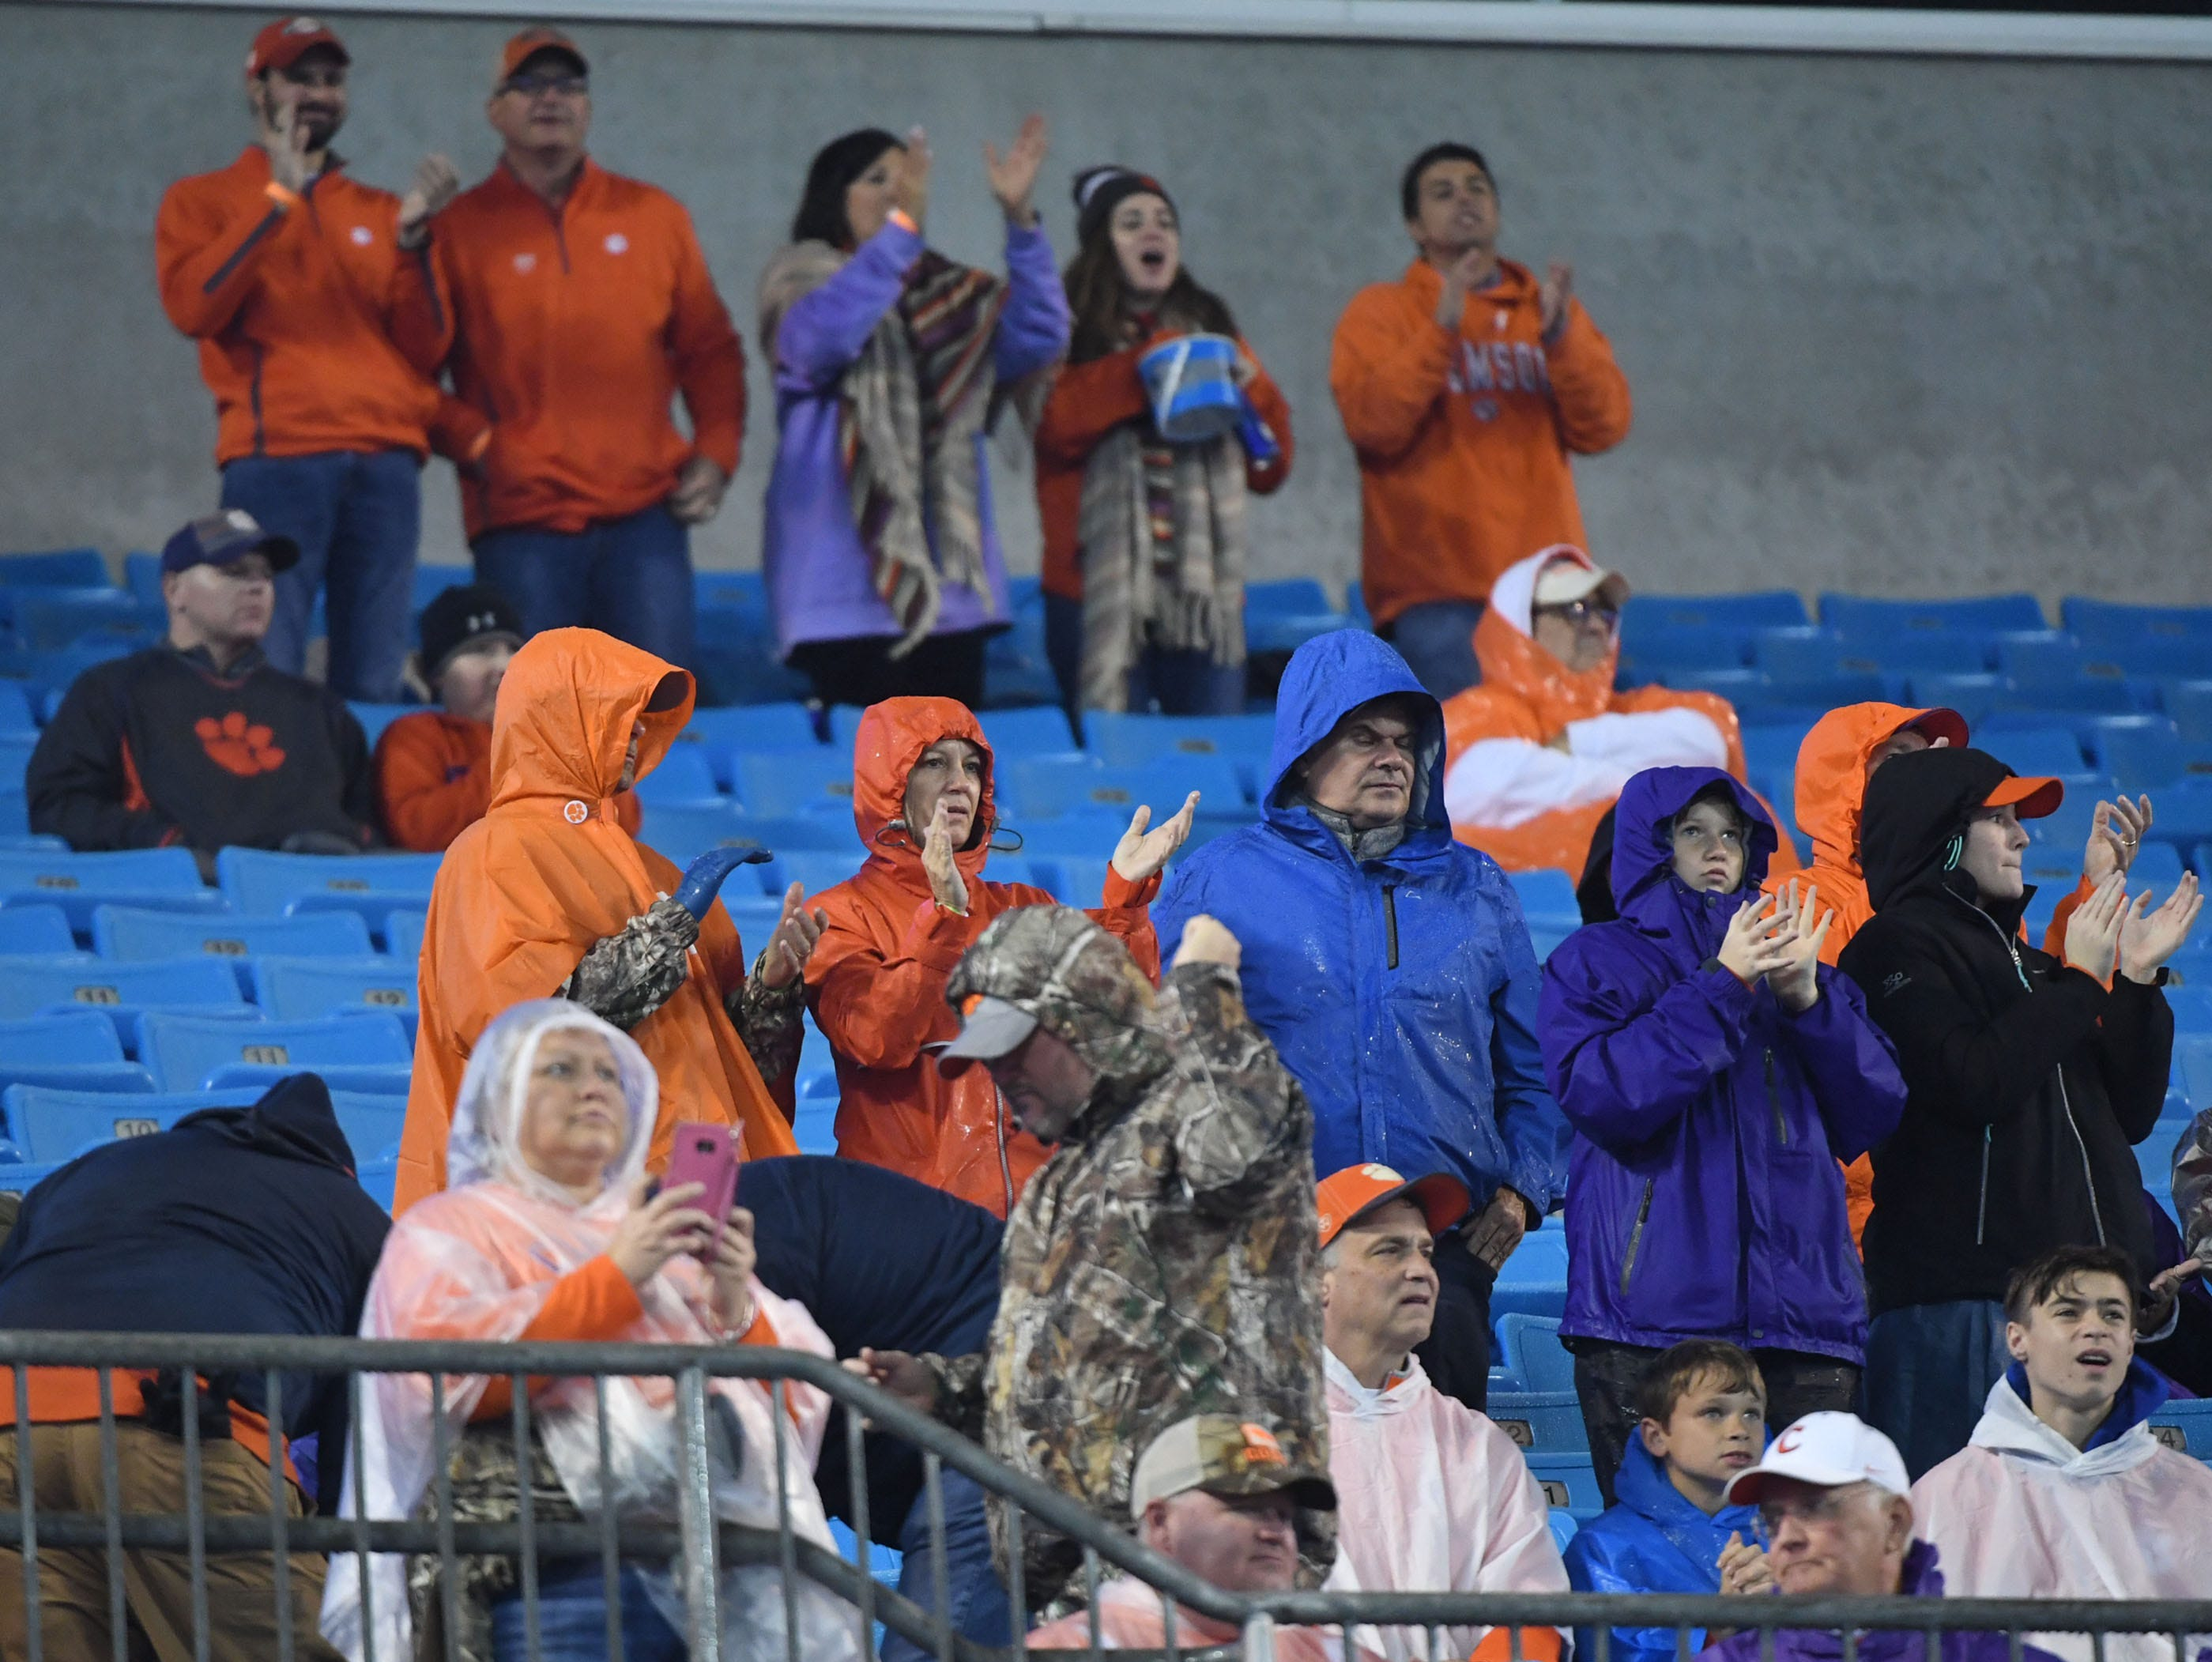 Clemson fans cheer before the game of the Dr. Pepper ACC football championship at Bank of America Stadium in Charlotte, N.C. on Saturday, December 1, 2018.